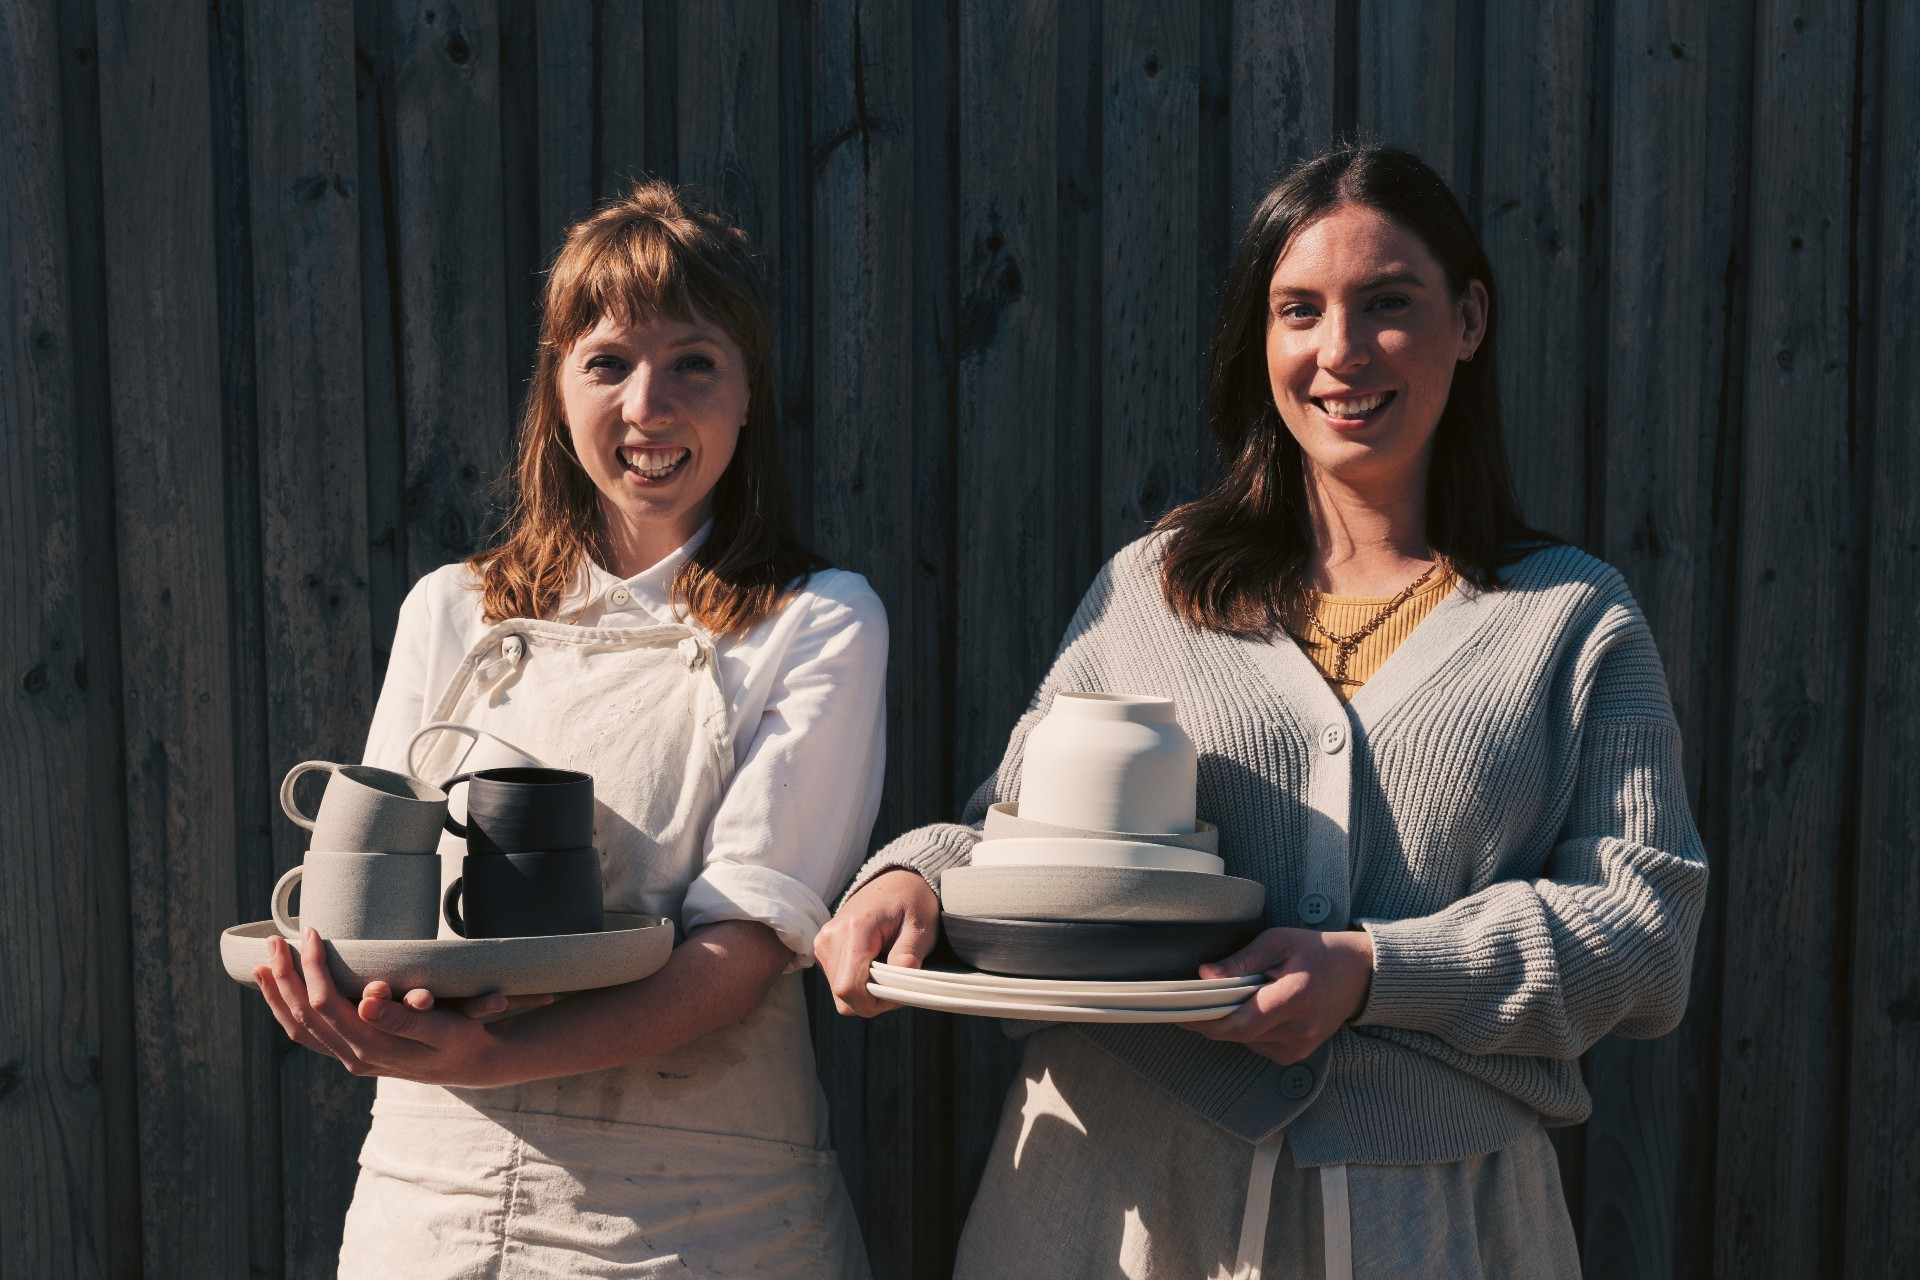 Two people smile holding bundles of grey, black and white ceramics